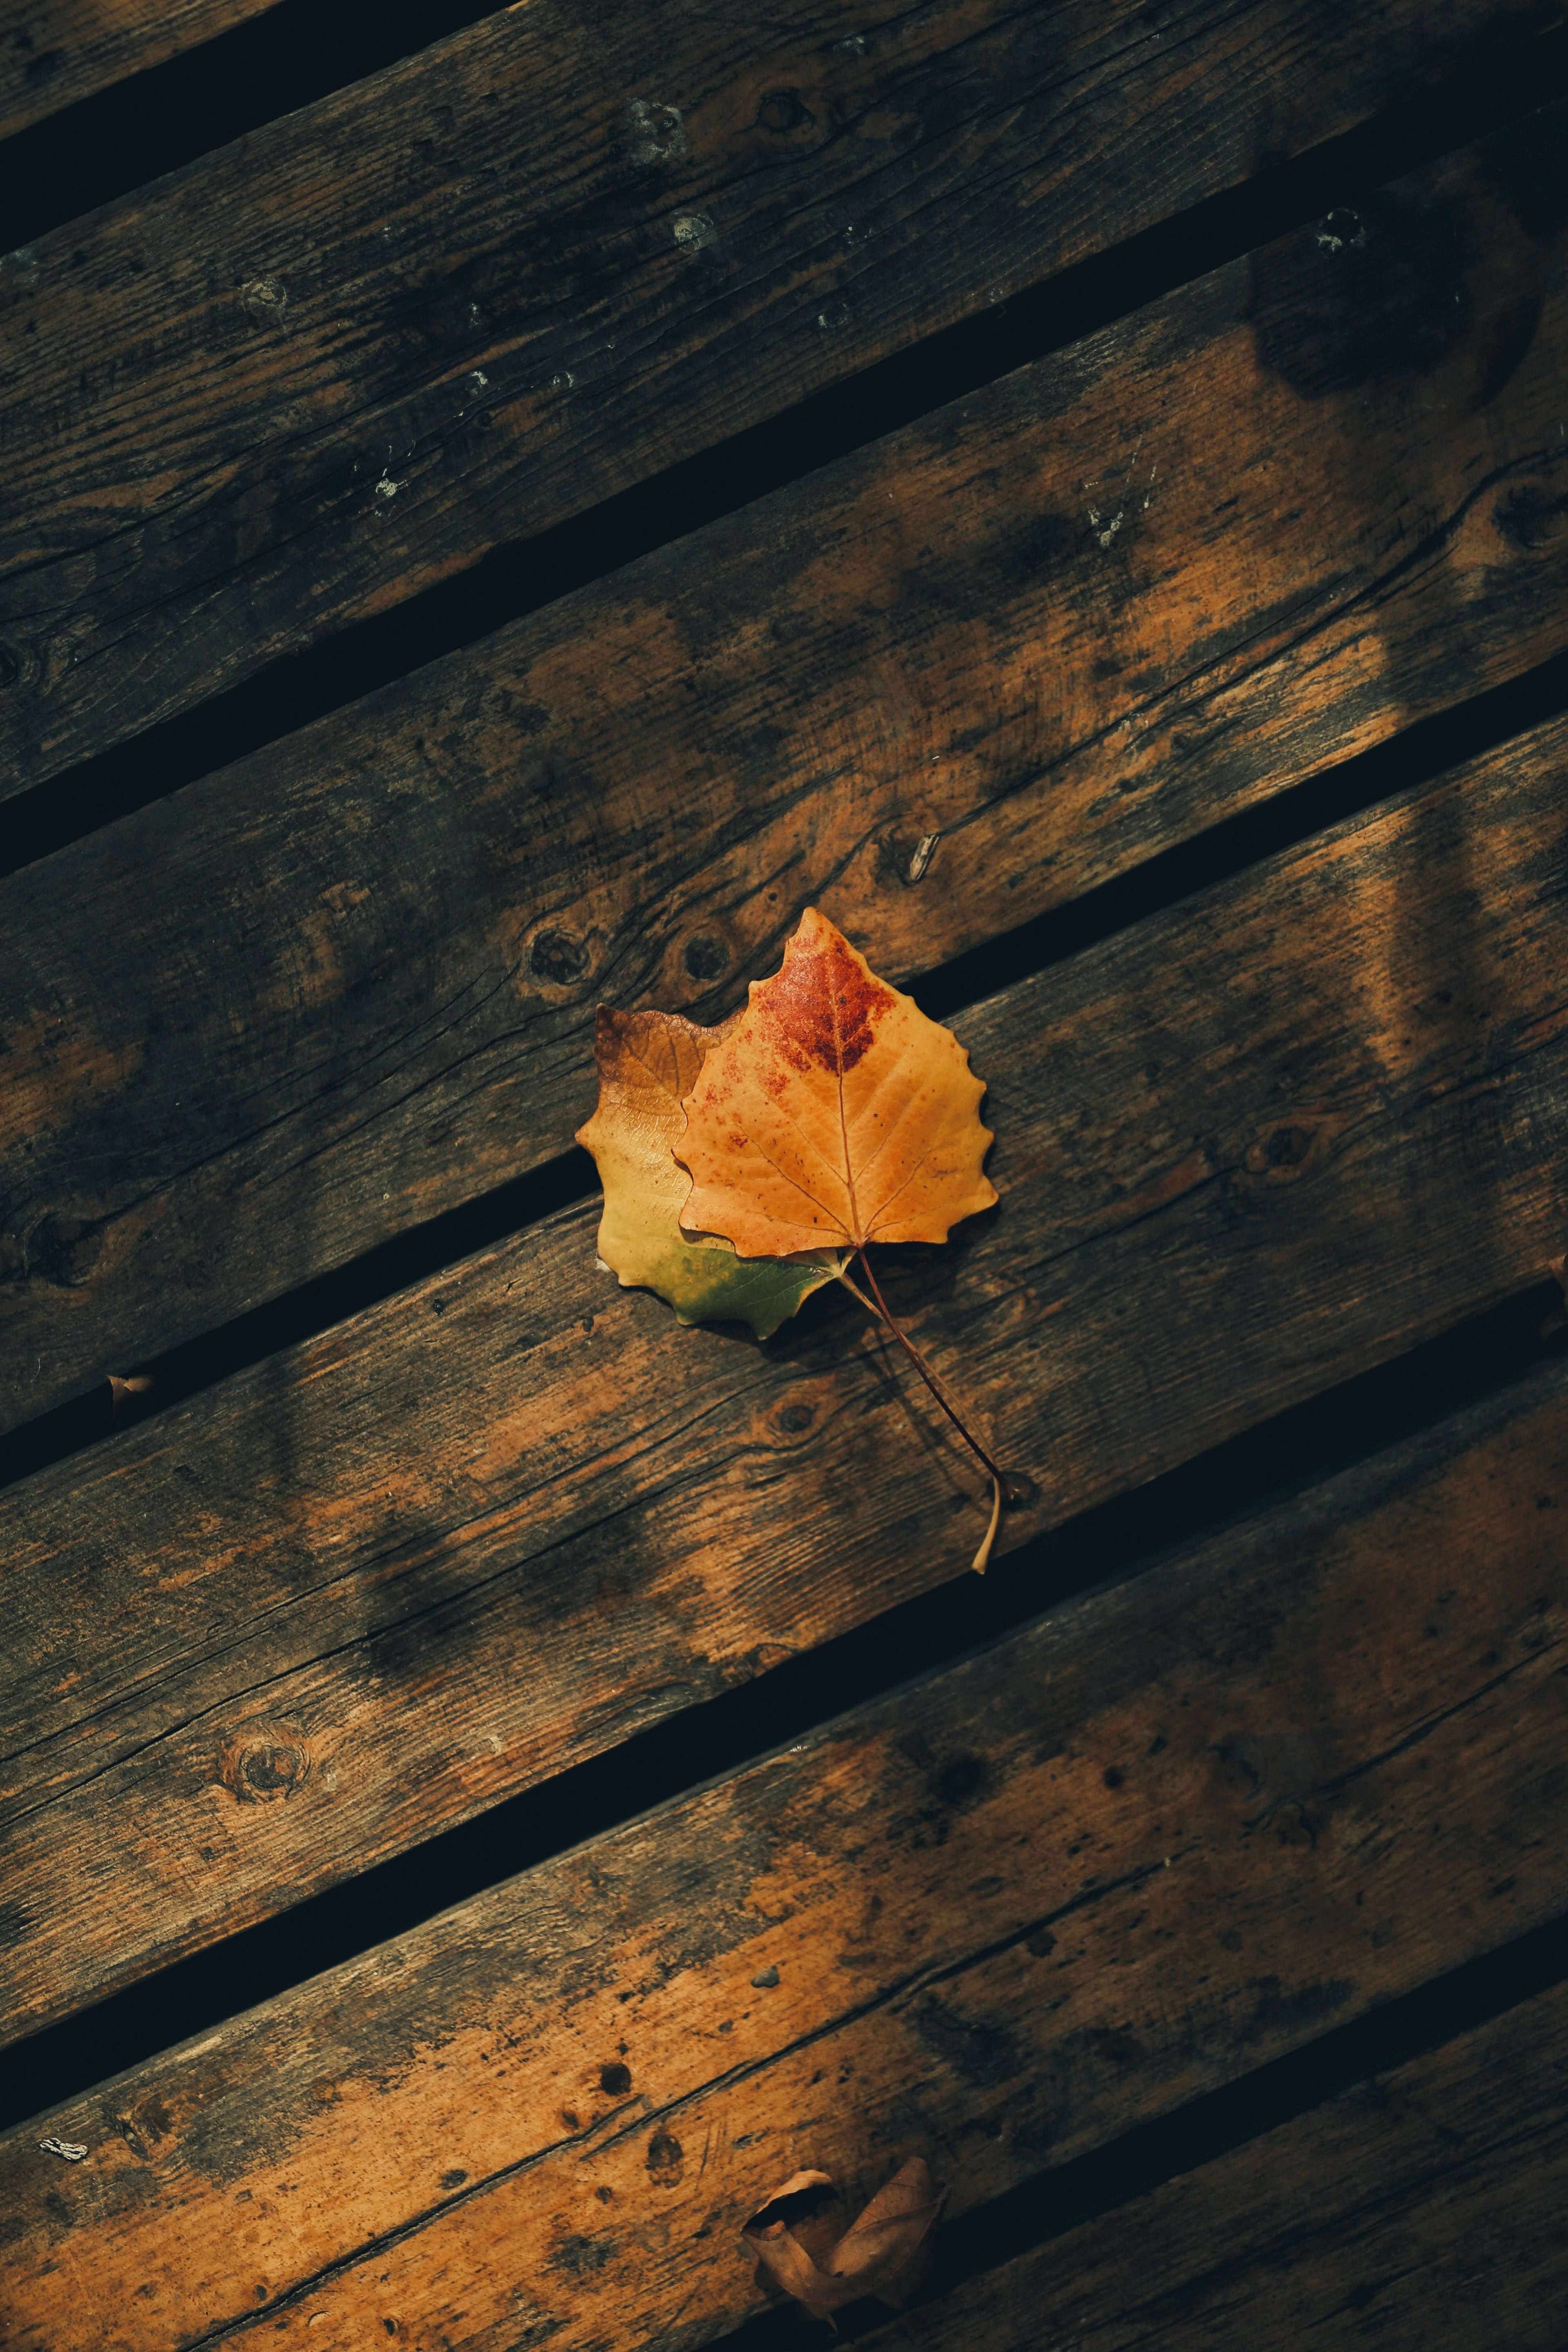 125026 download wallpaper Miscellanea, Miscellaneous, Leaves, Autumn, Wood, Wooden, Planks, Board screensavers and pictures for free